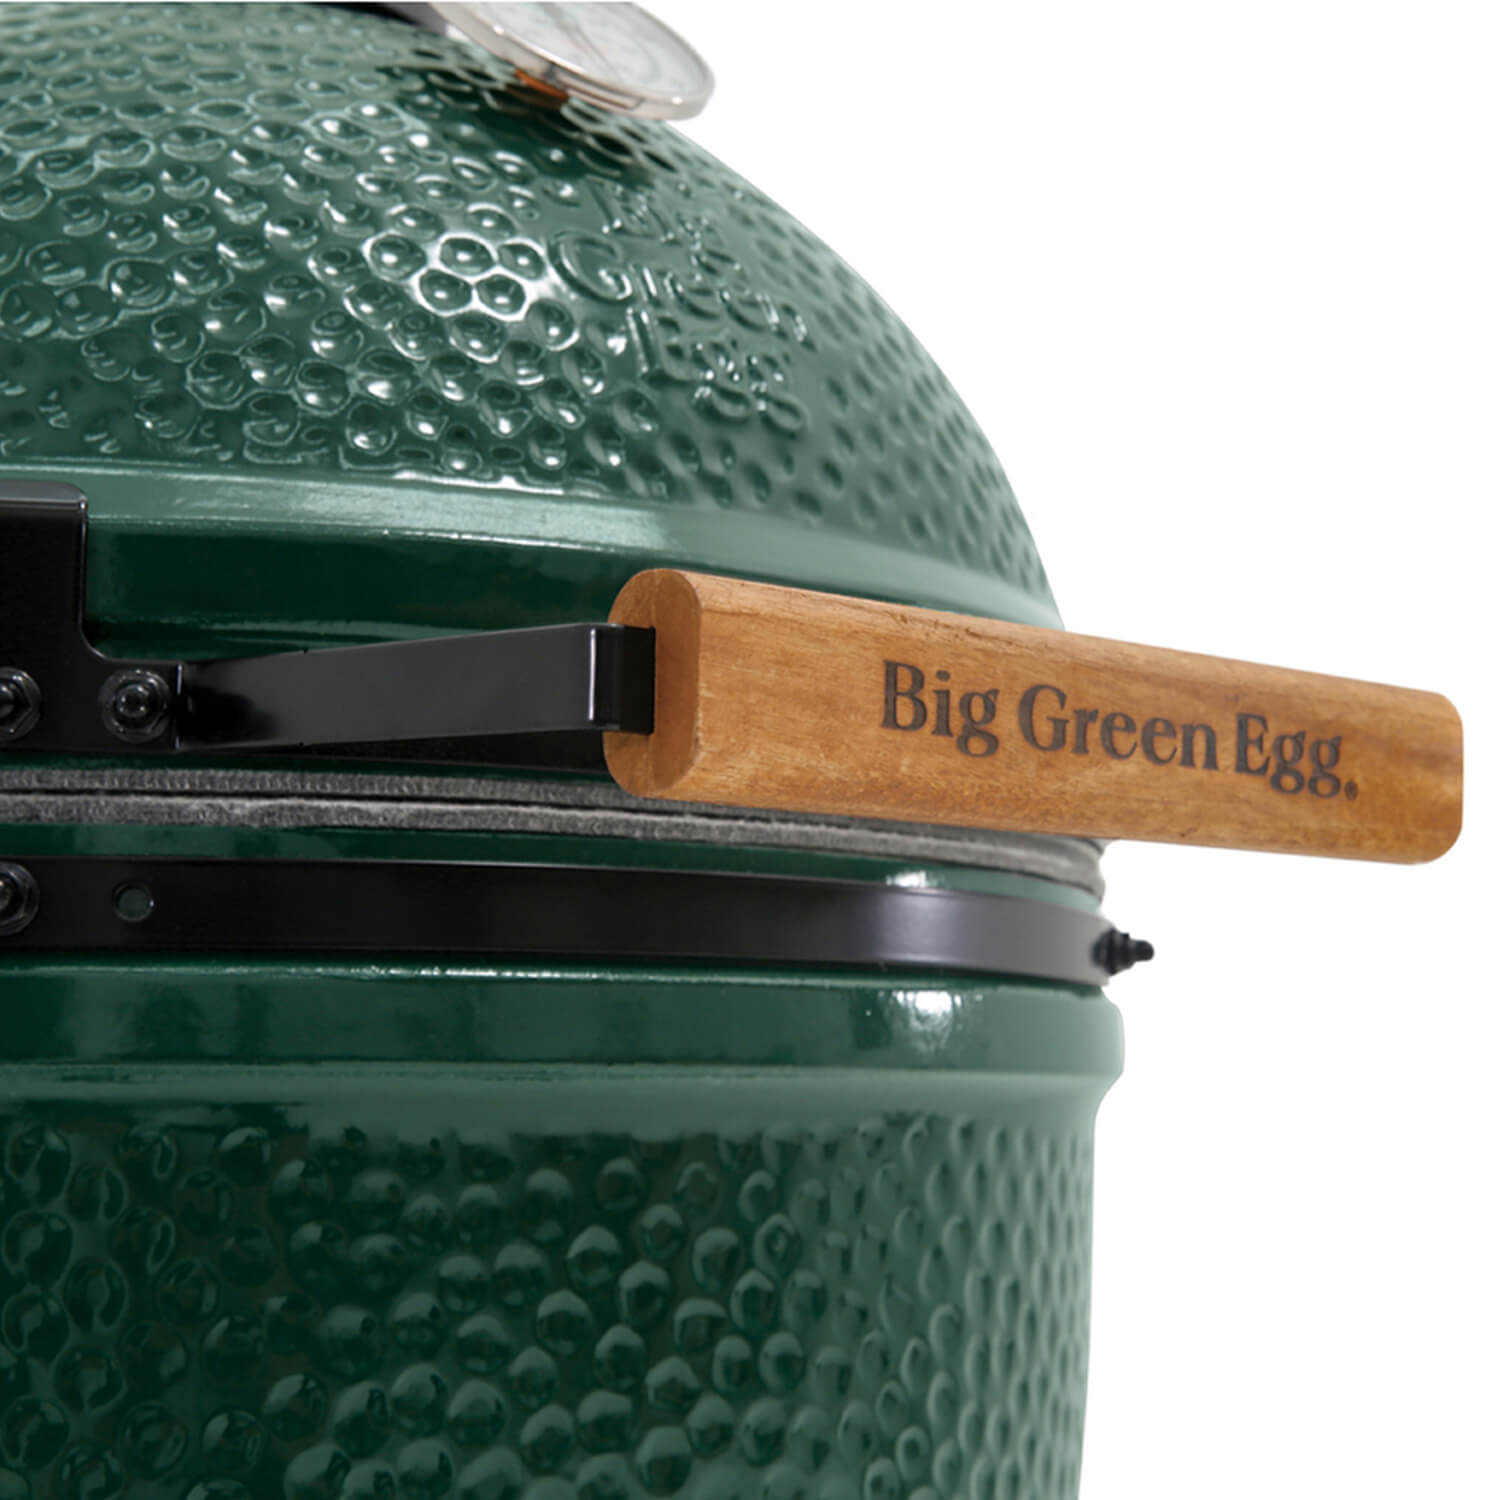 Small BGE Original Kit